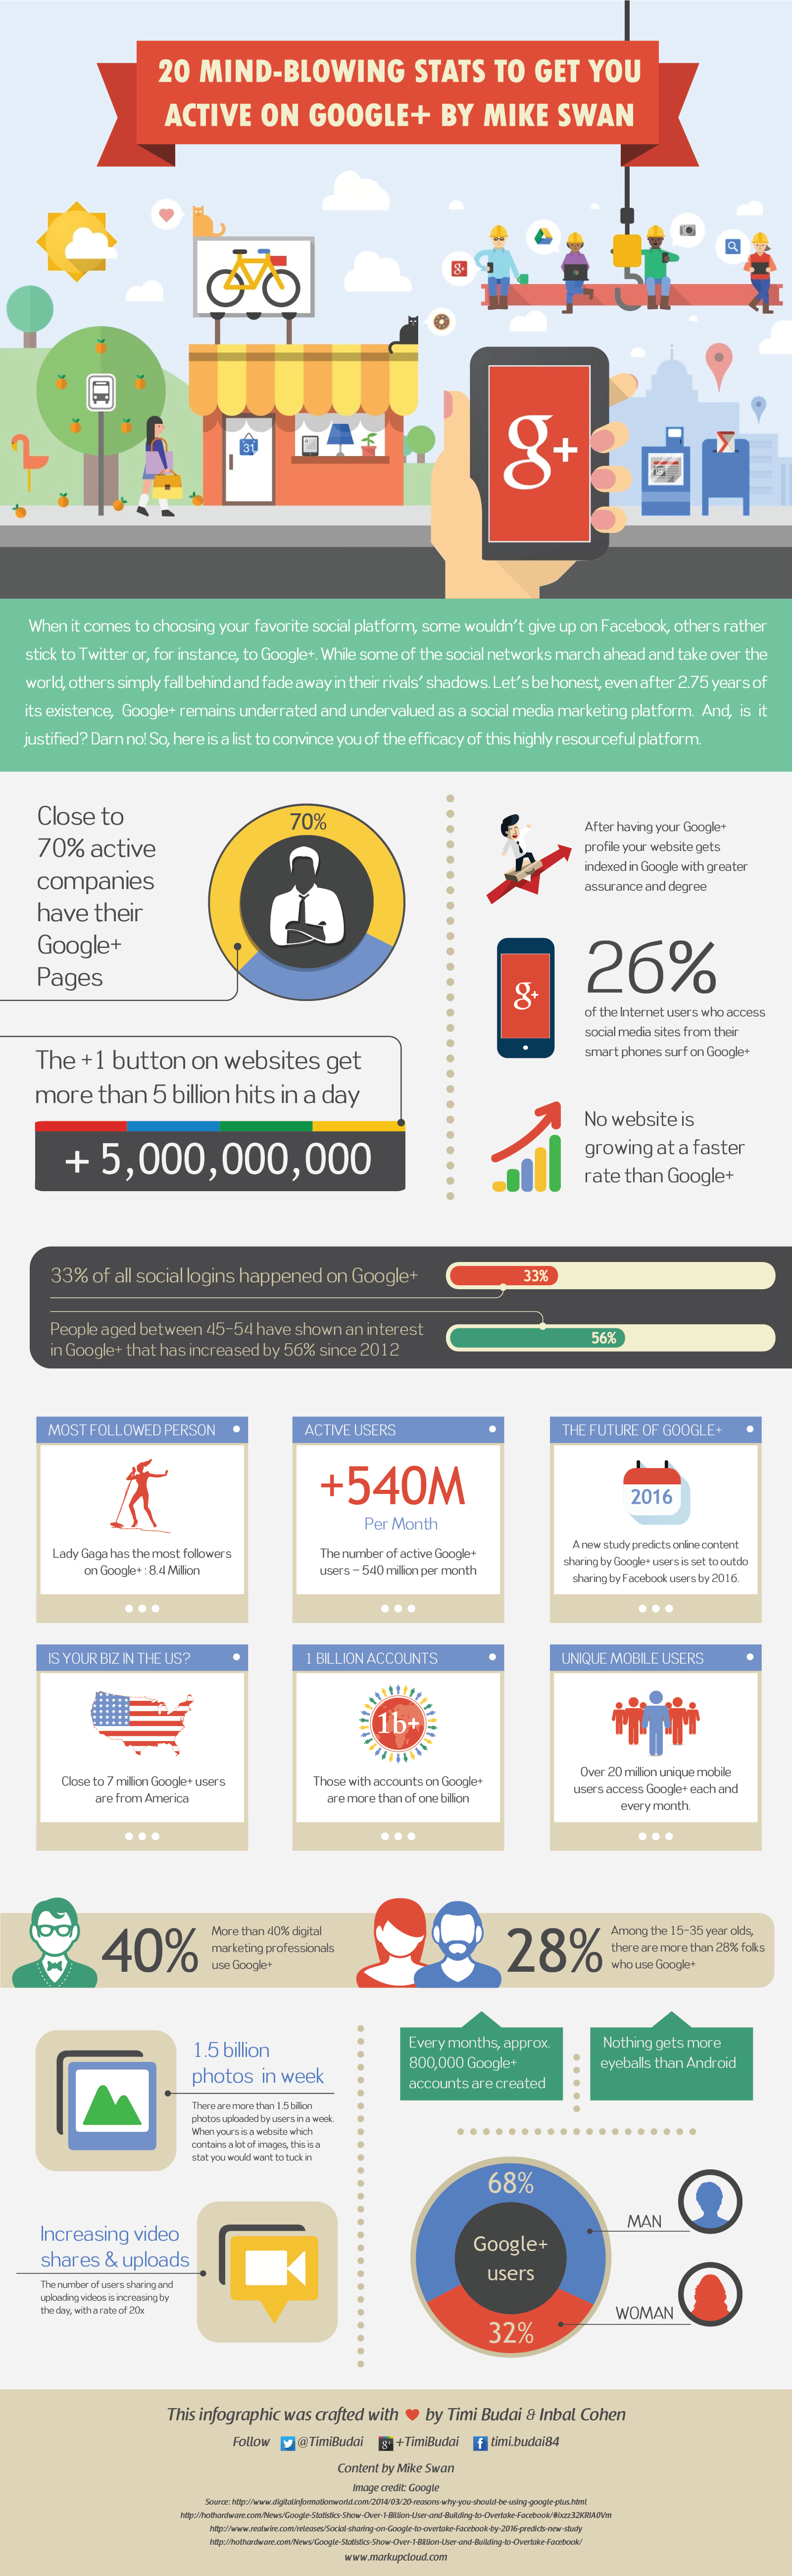 20 Surprising Google+ Facts, Figures And Stats That Will Blow Your Mind